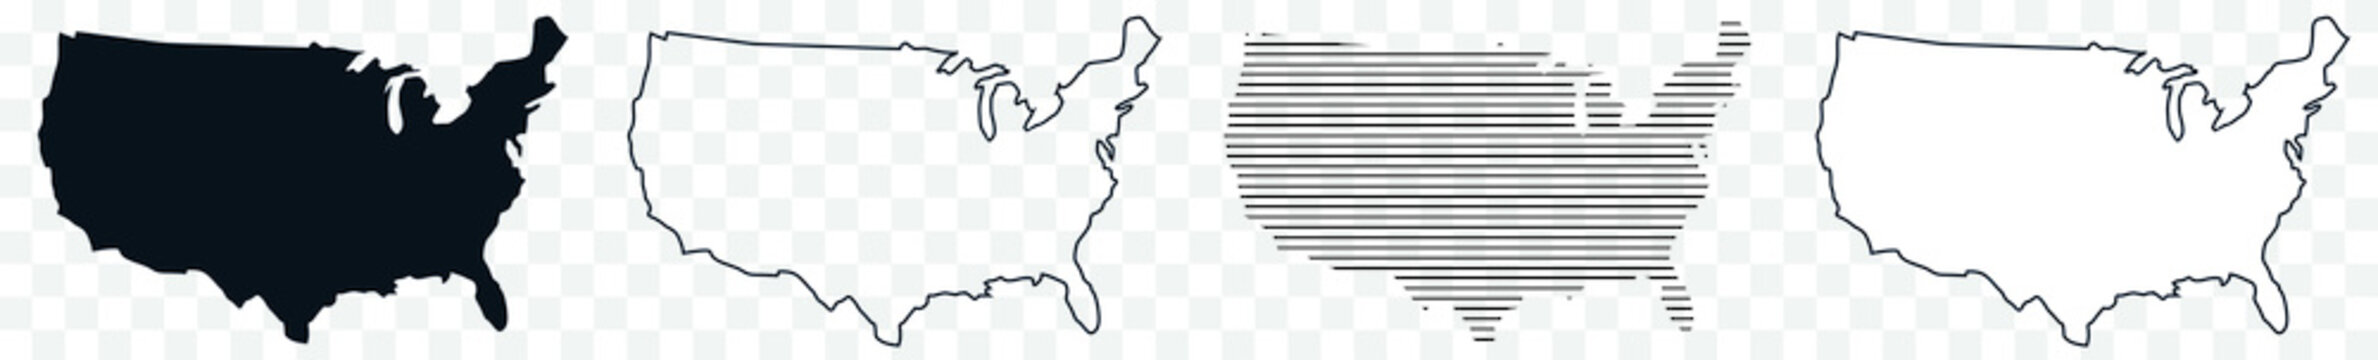 US Map Black | USA Border | United States Country | America | Transparent Isolated | Variations